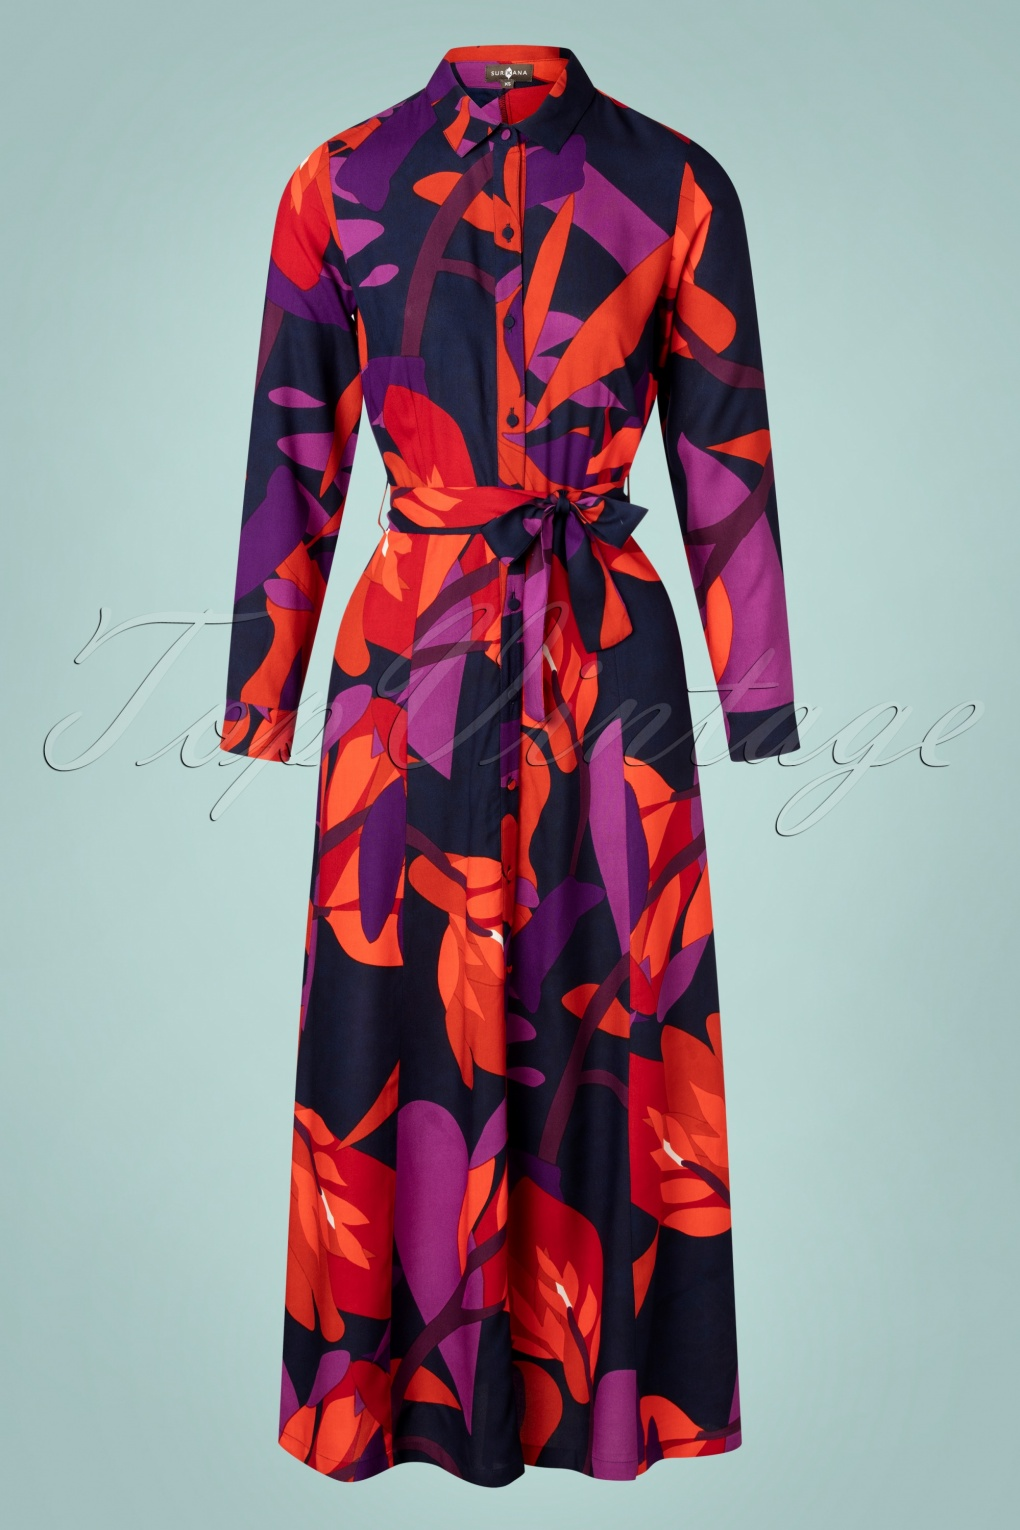 Vintage Style Dresses | Vintage Inspired Dresses 70s Naran Maxi Dress in Navy and Purple £87.07 AT vintagedancer.com